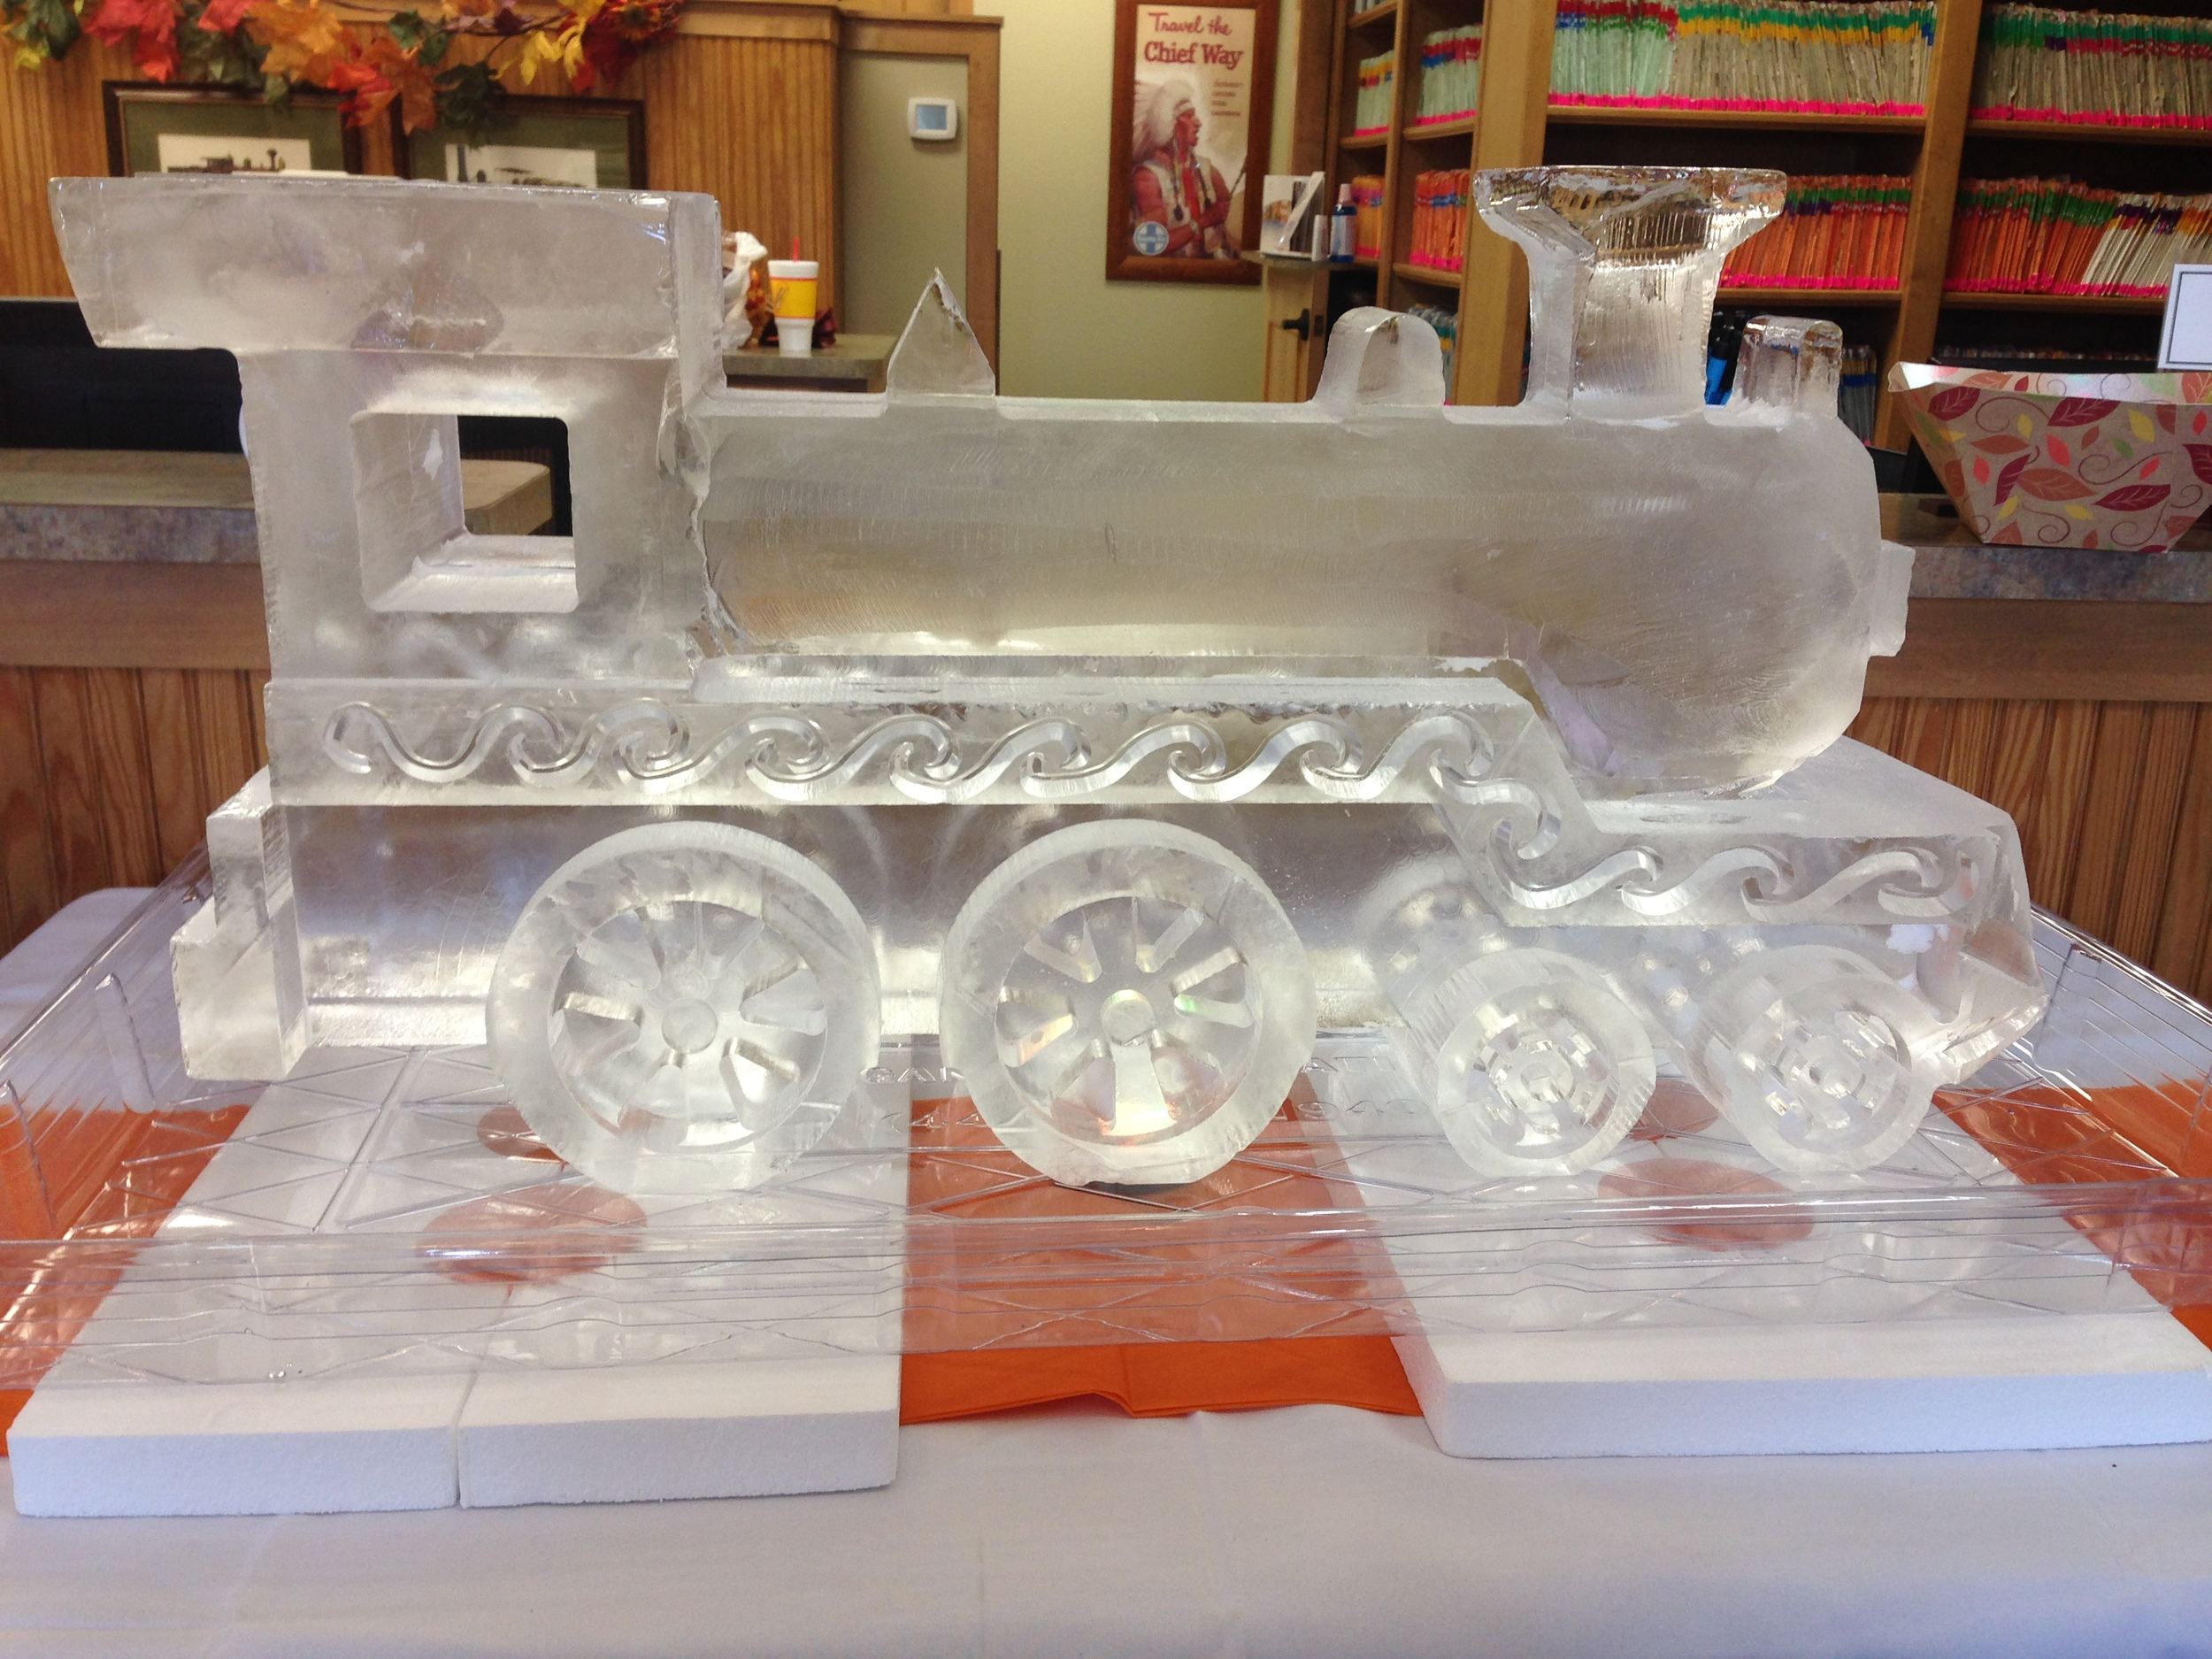 Christmas train ice sculpture